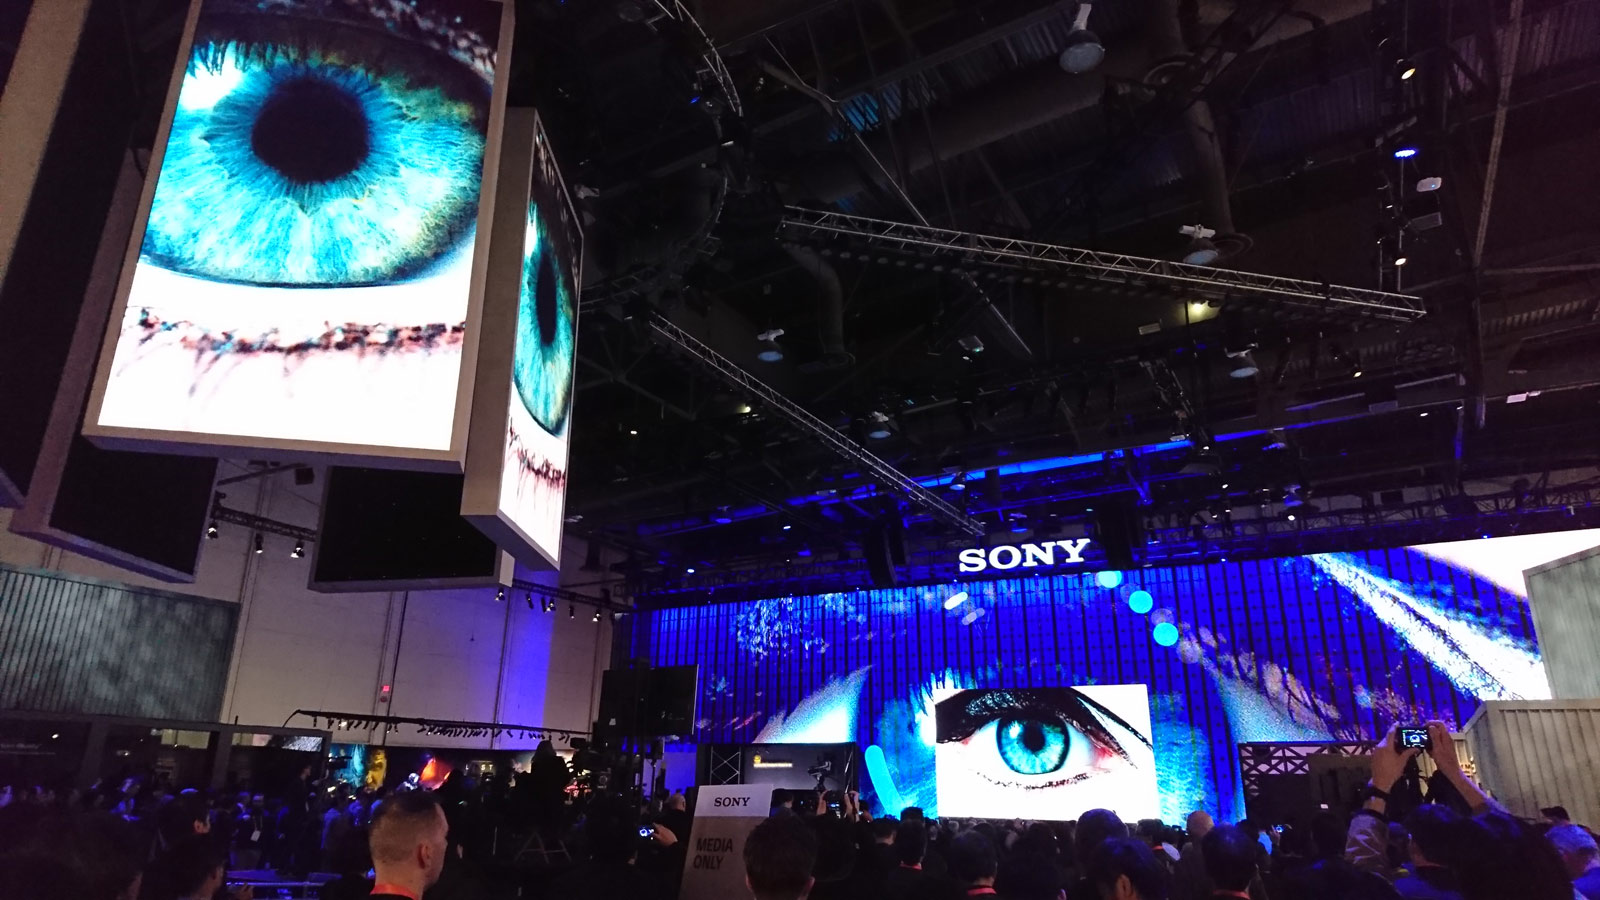 SONY at CES Photo by - Mark Woudsma